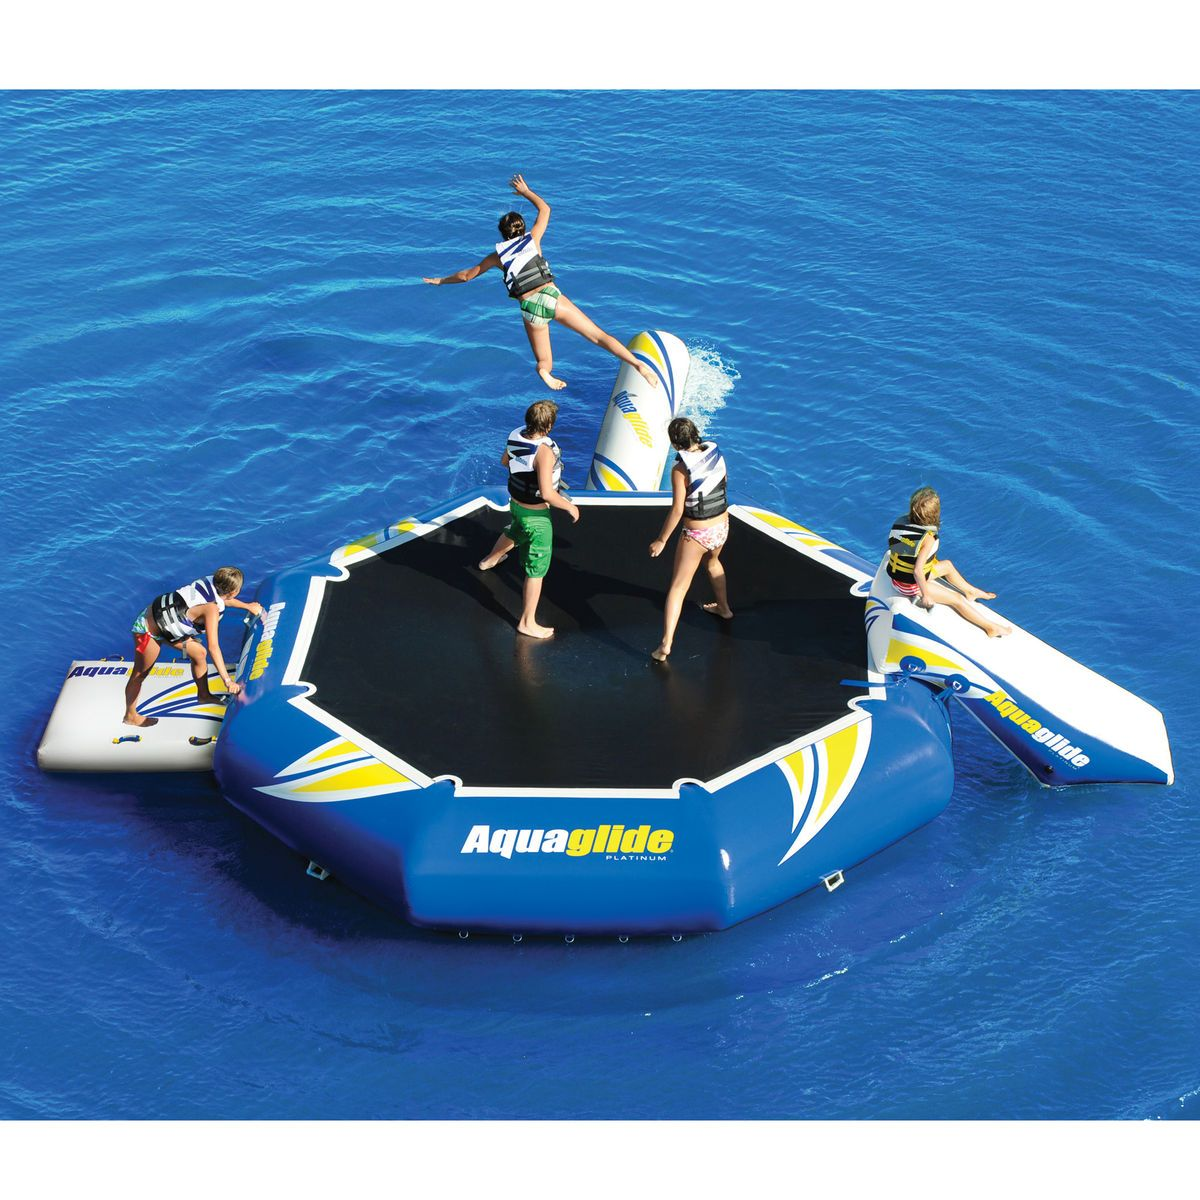 Juegos Acuaticos Piscina Aquaglide Platinum Rebound Aquapark 16 Bouncer Set